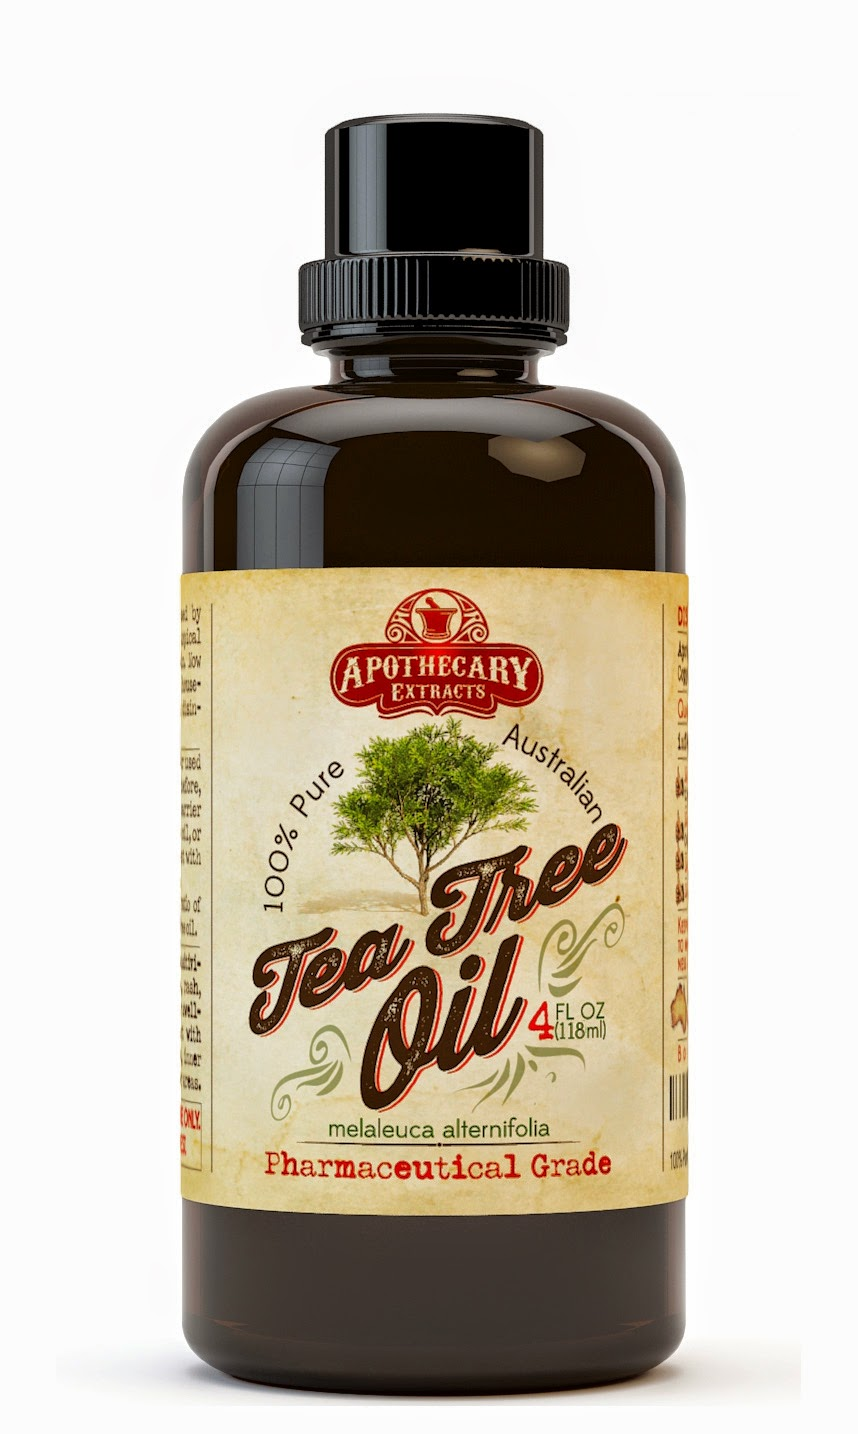 Sandysandhu Apothecary Tea Tree Oil